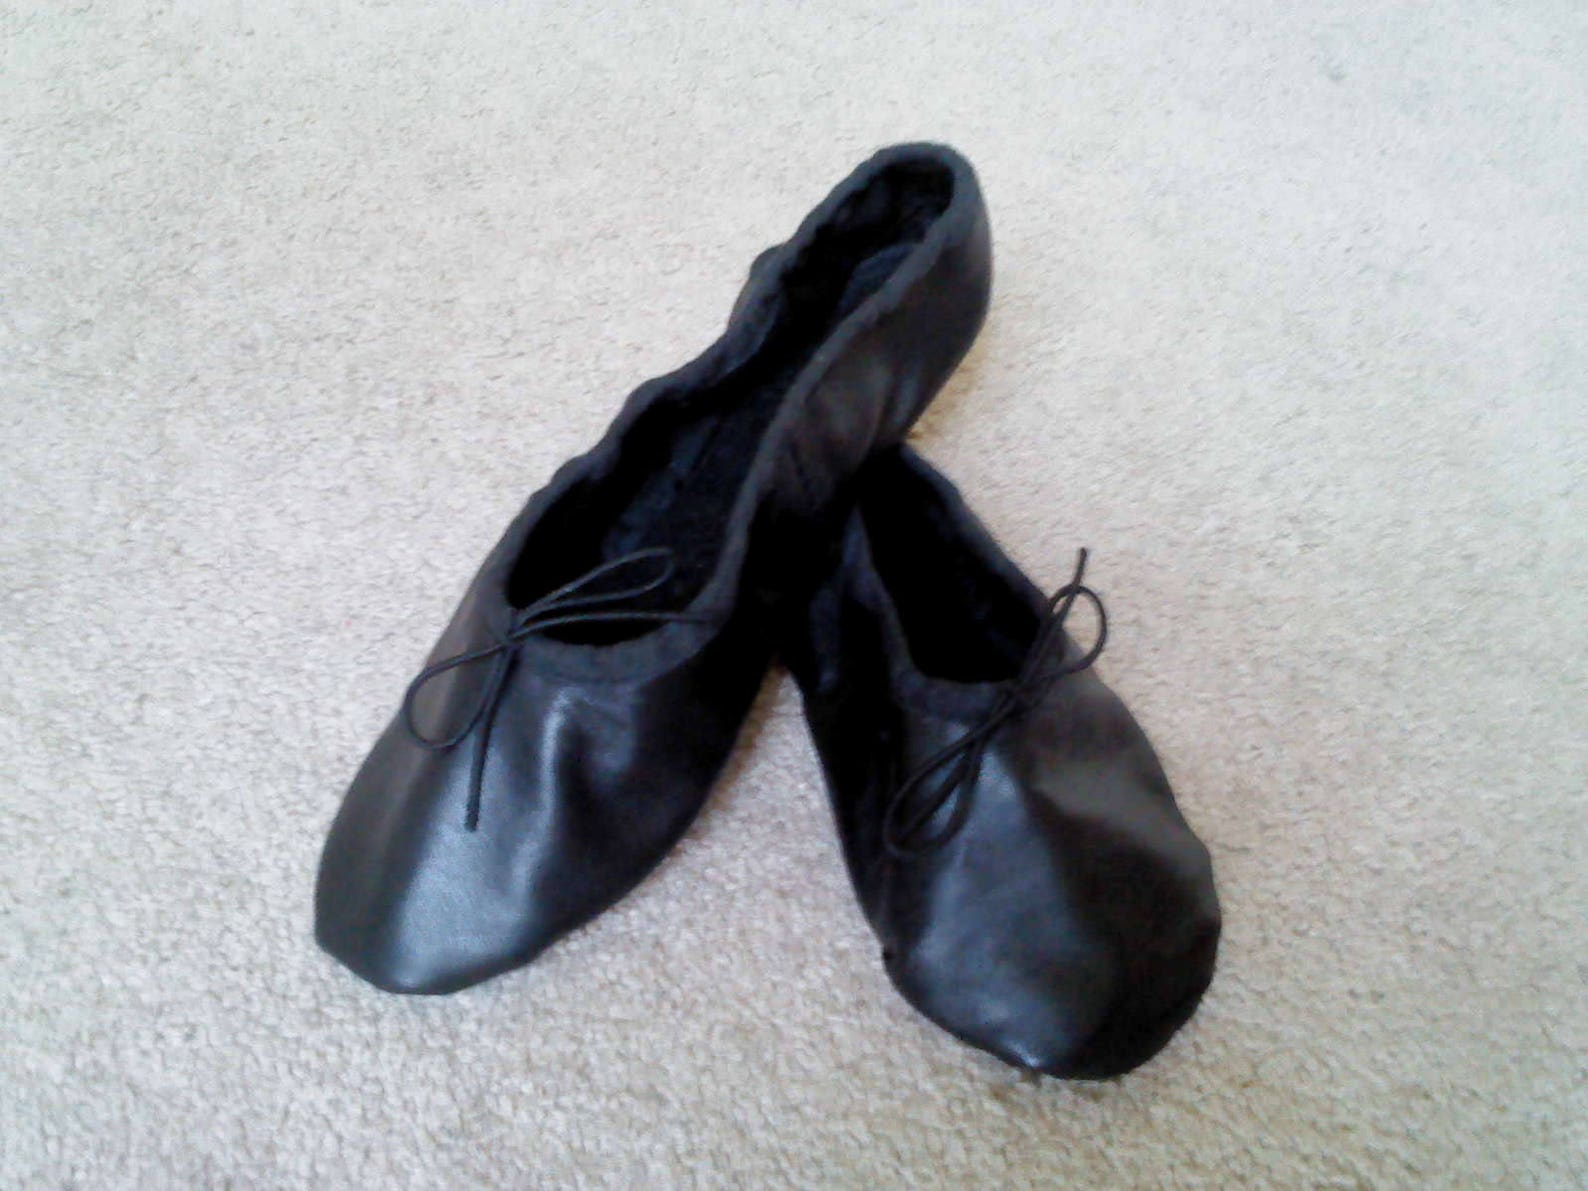 black leather ballet slippers -adult/women's sizes - full sole or split sole